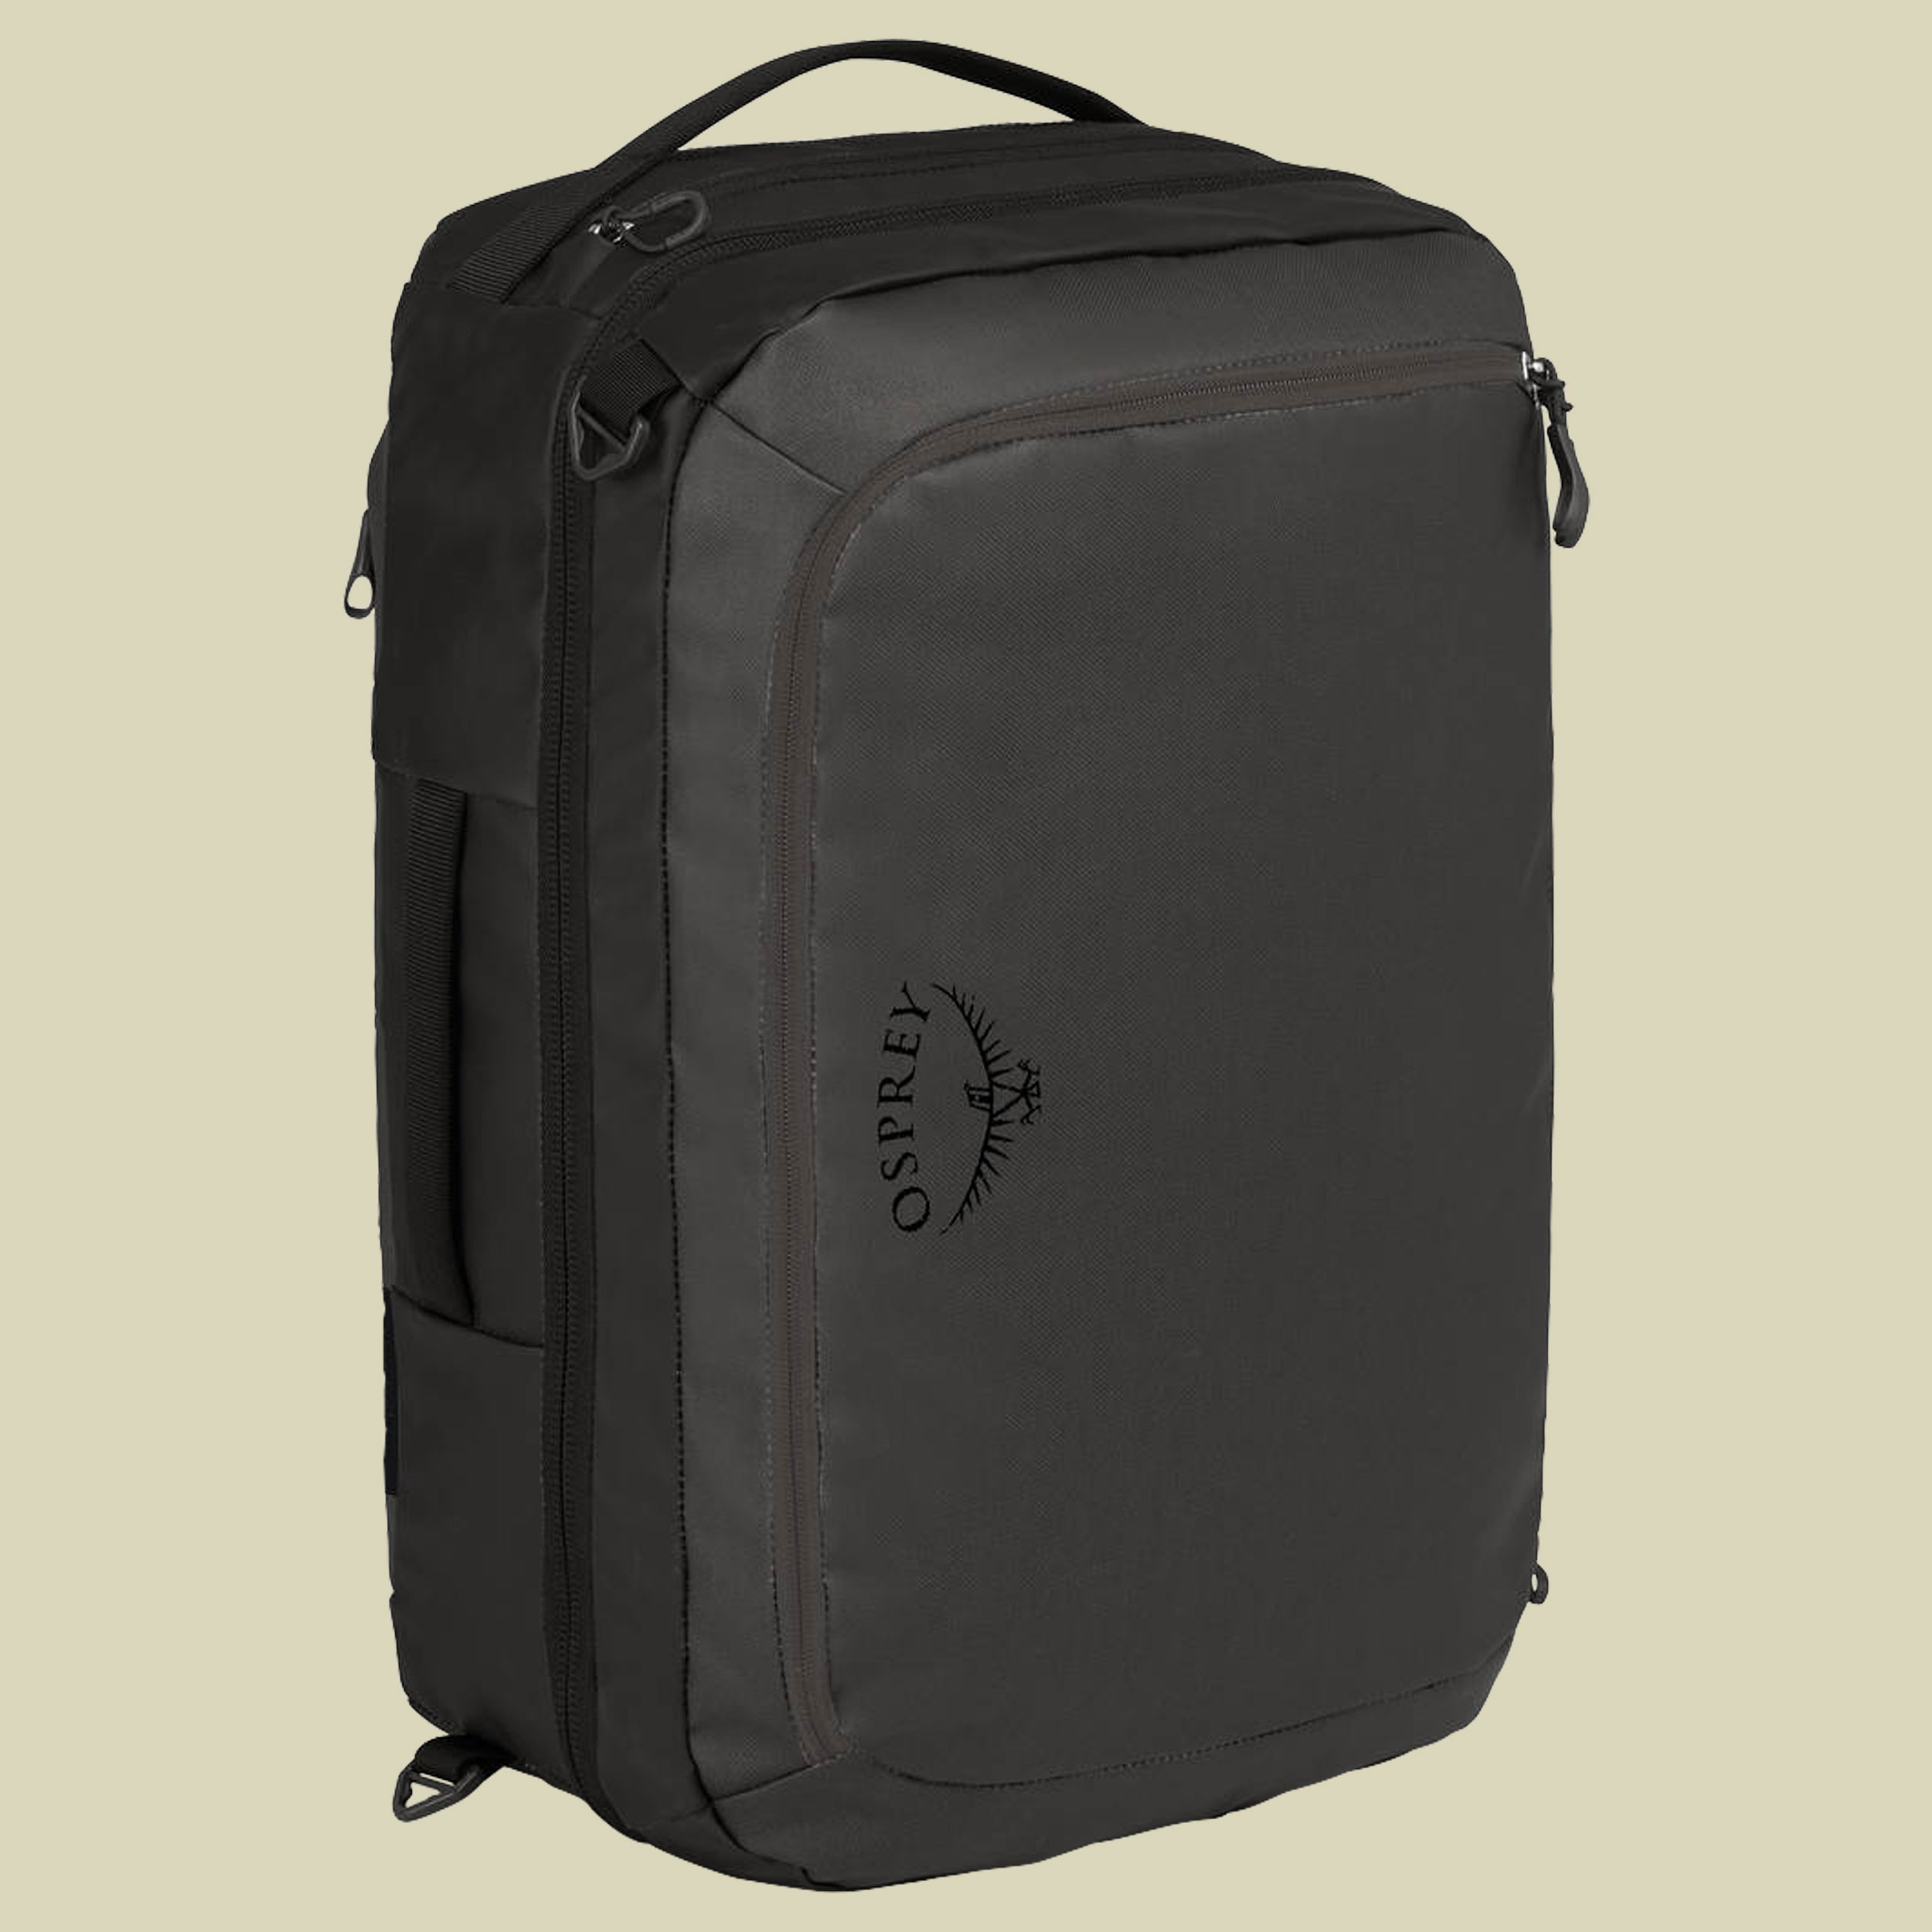 Transporter Global Carry-On 38